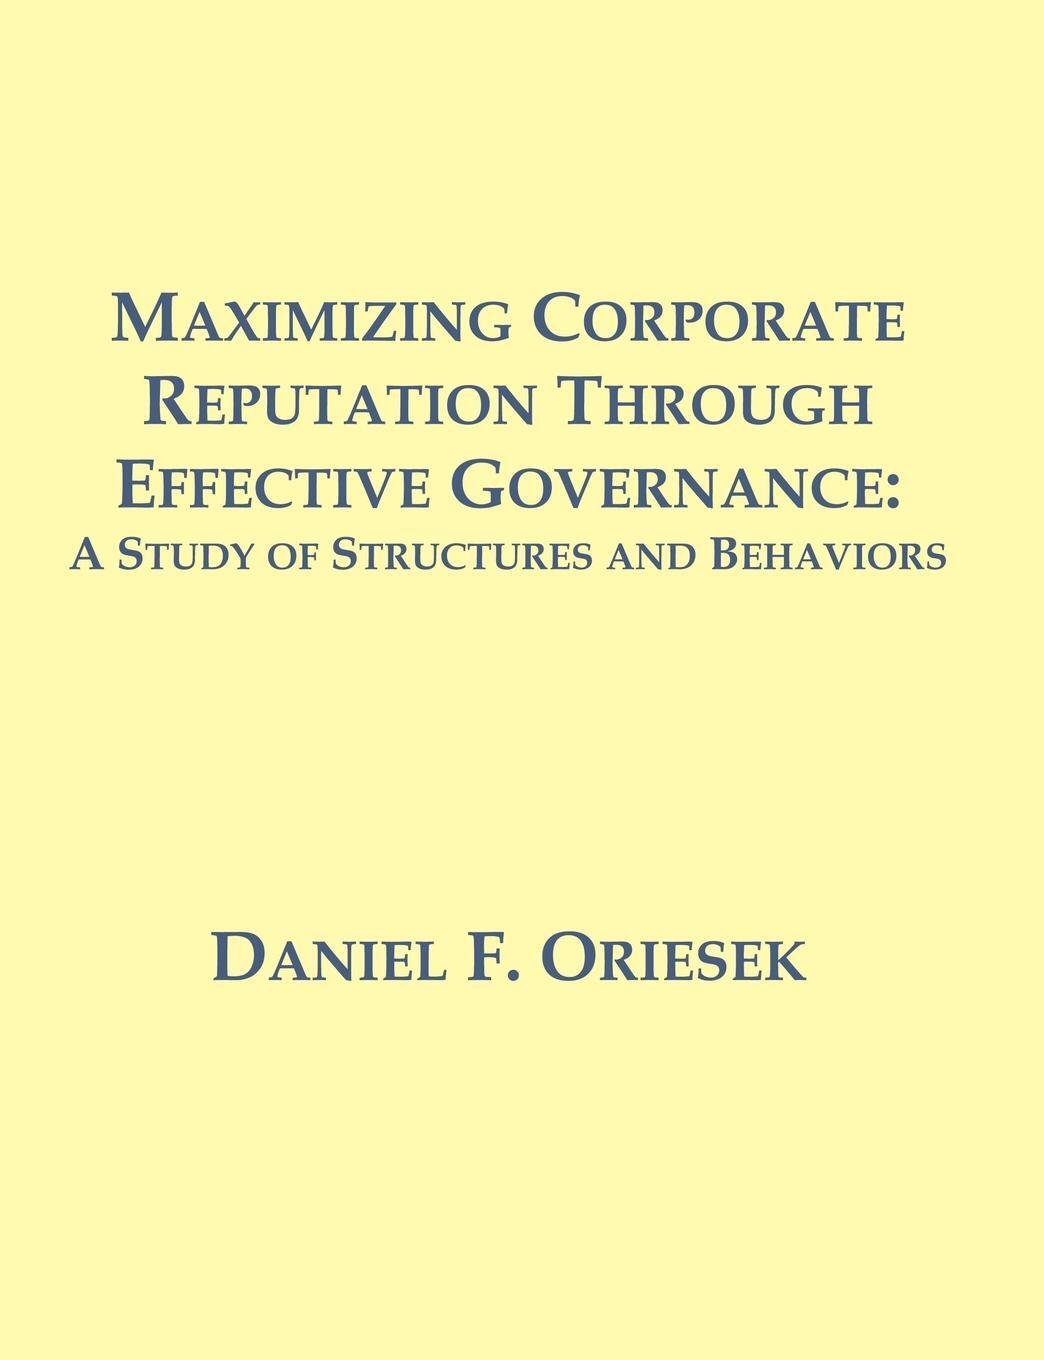 Maximizing Corporate Reputation Through Effective Governance. A Study of Structures and Behaviors